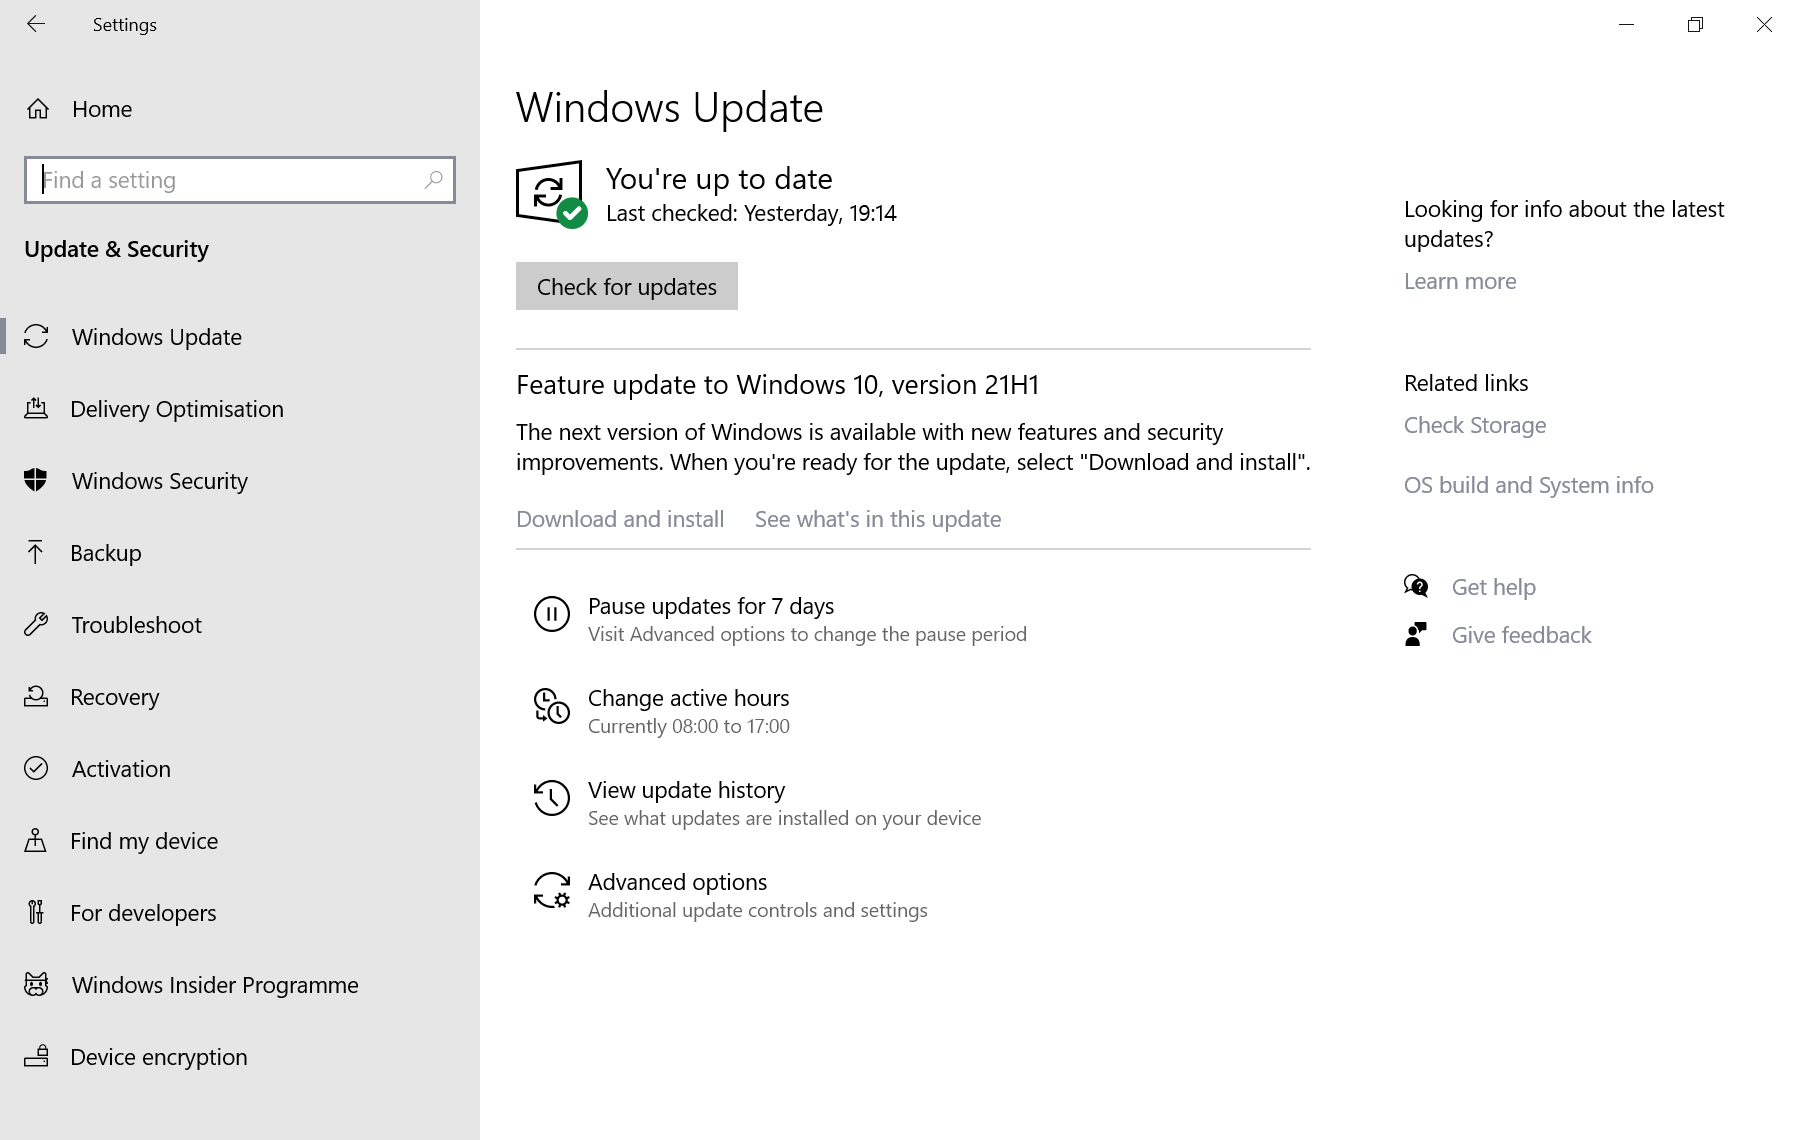 Windows 10 version 21H1 has been released windows-10-version-21h1.png